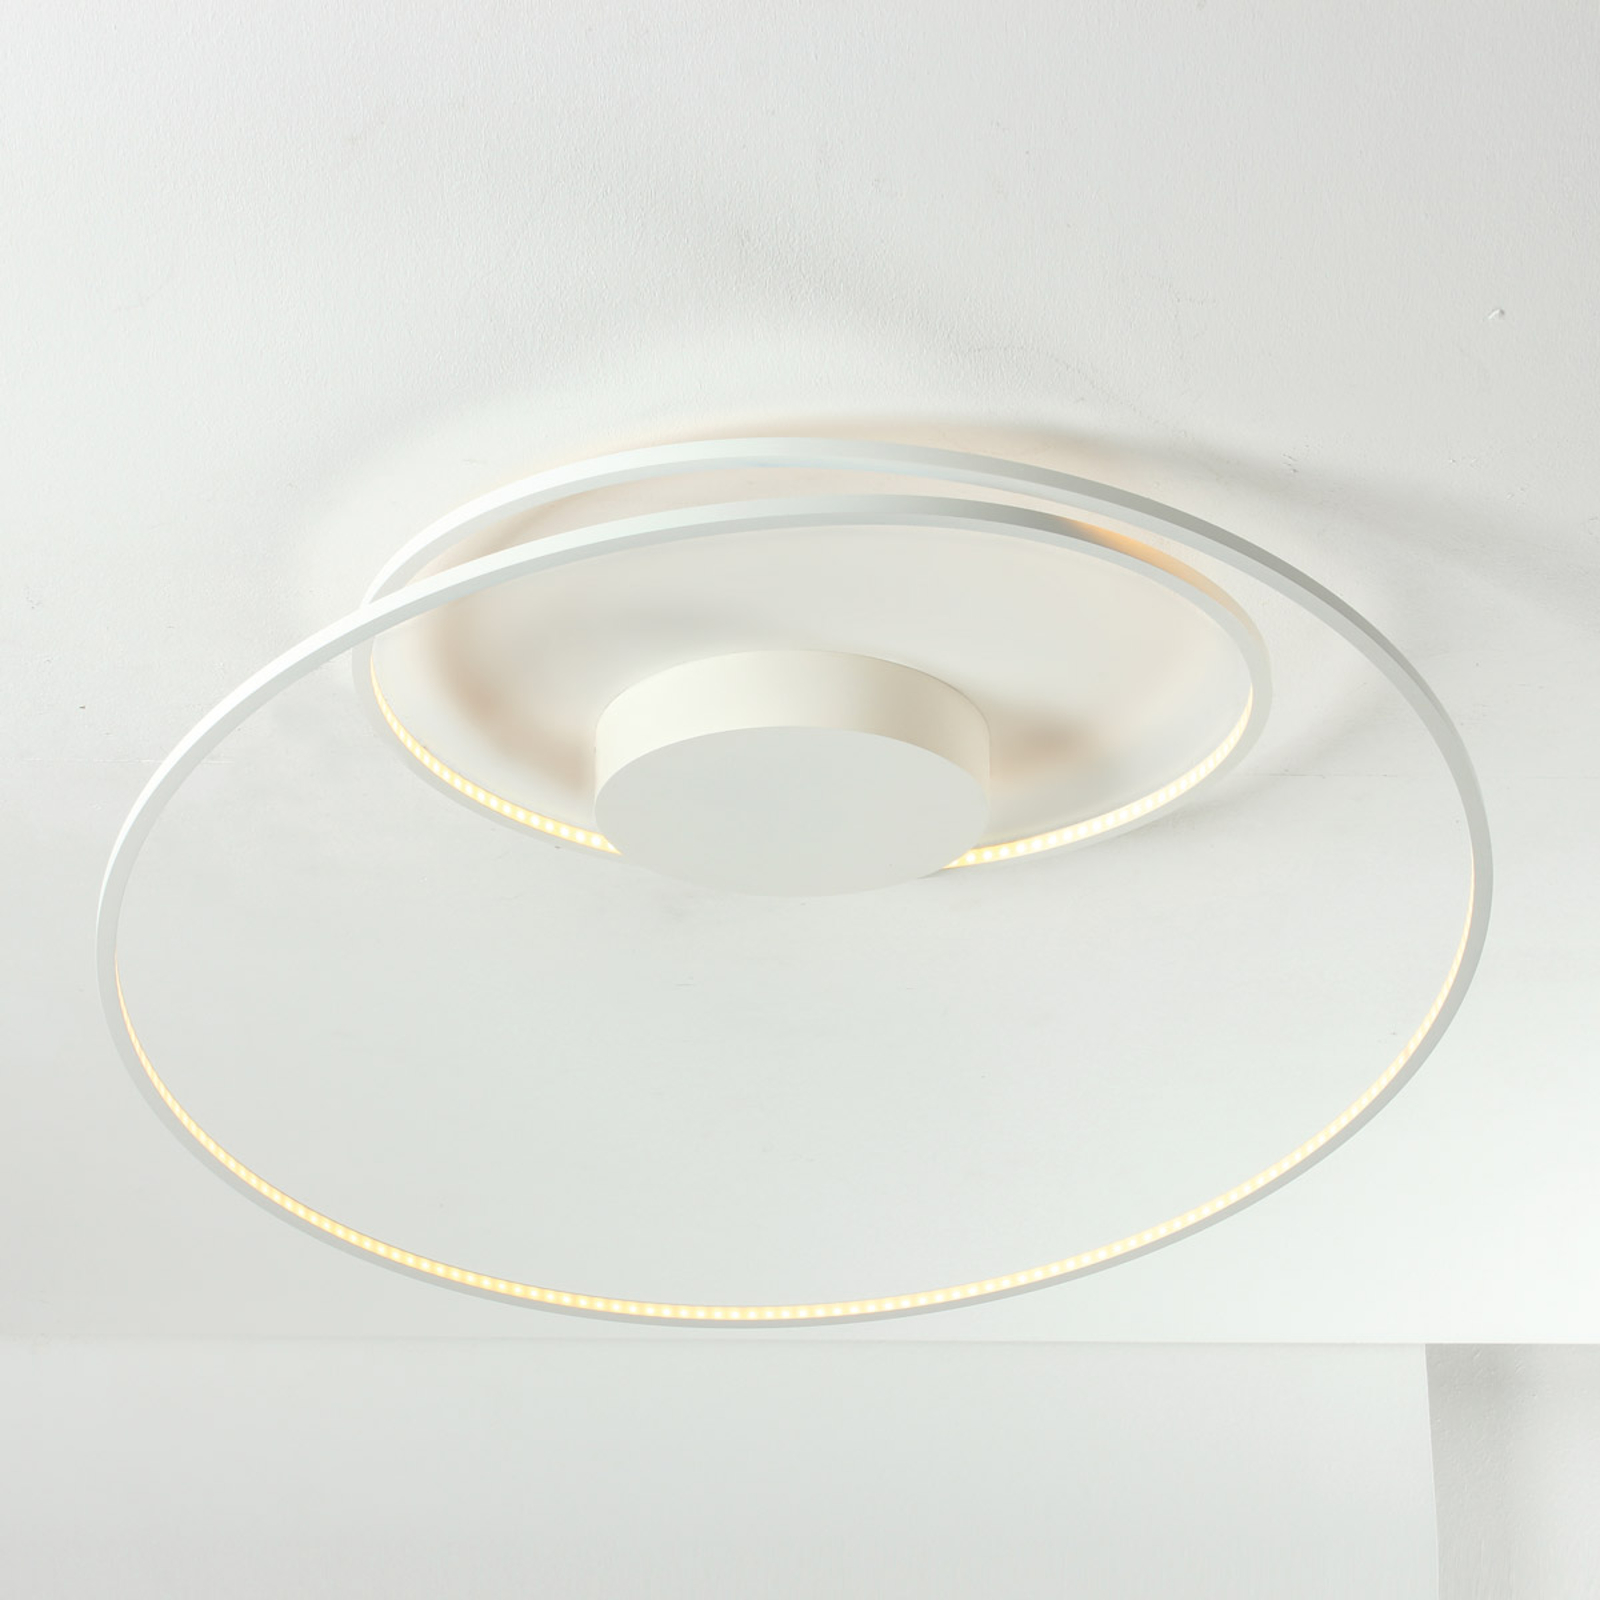 Flashy LED ceiling light At_1556122_1